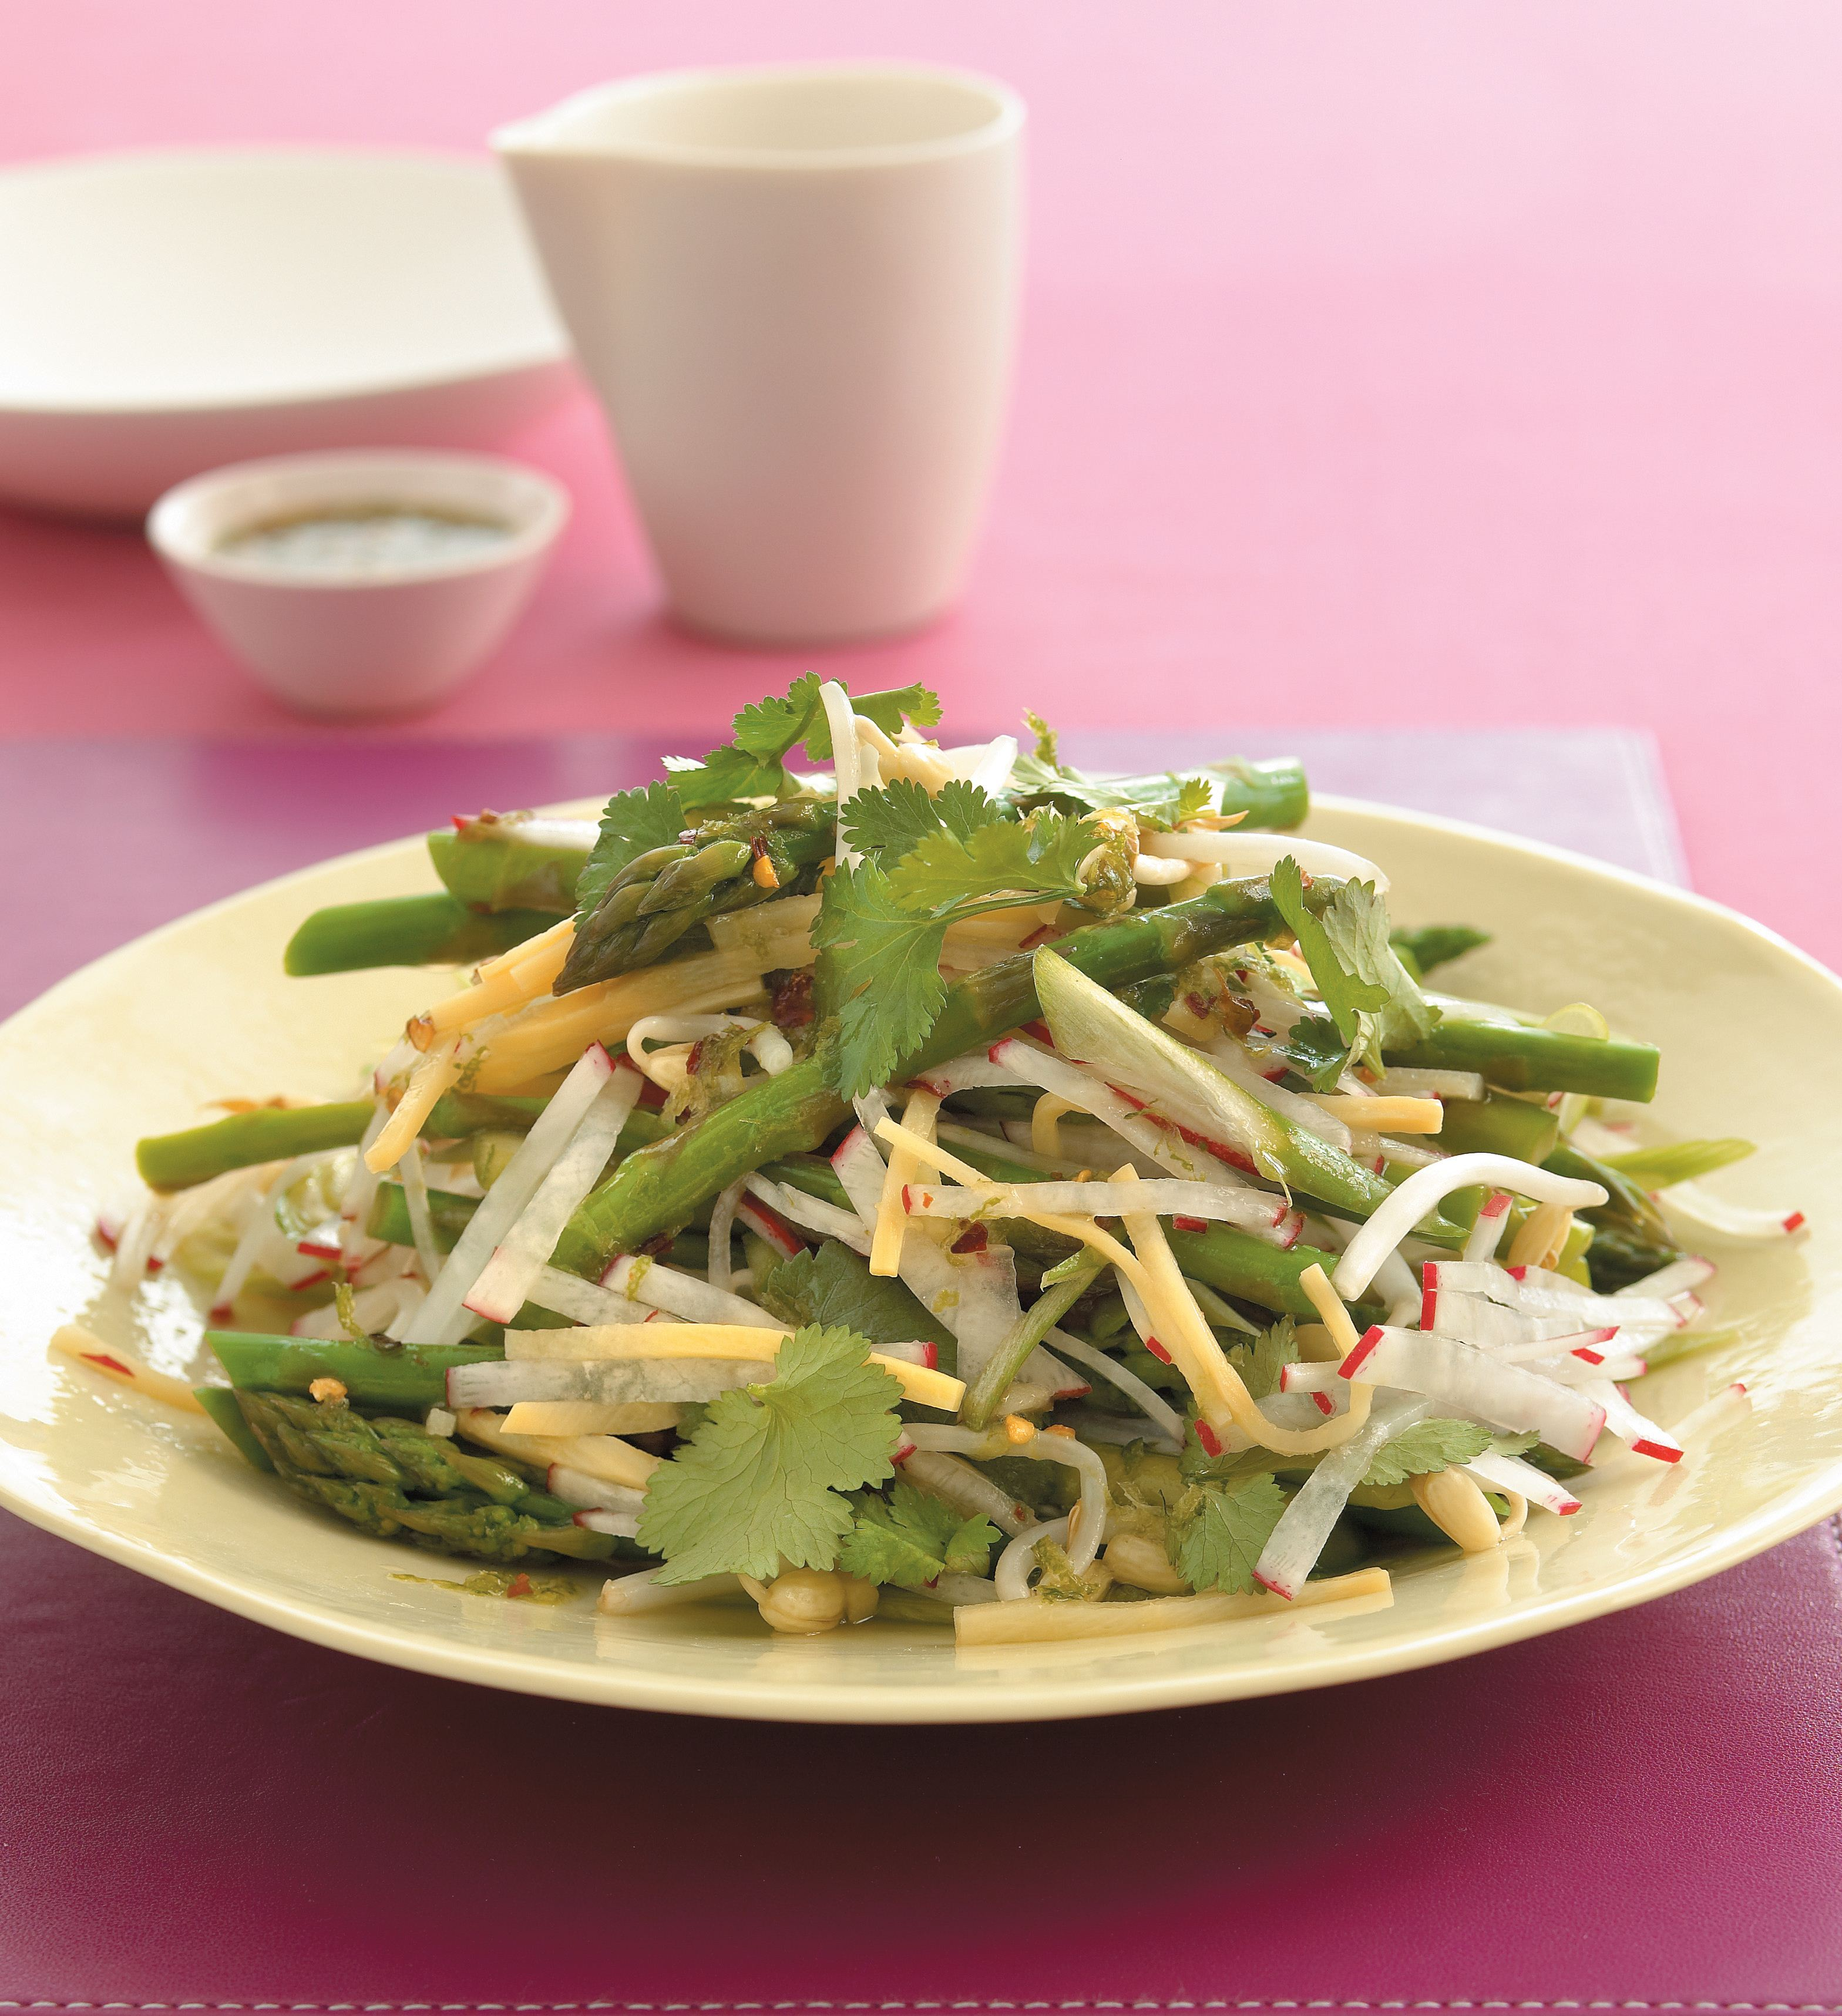 Asparagus and bamboo shoot salad